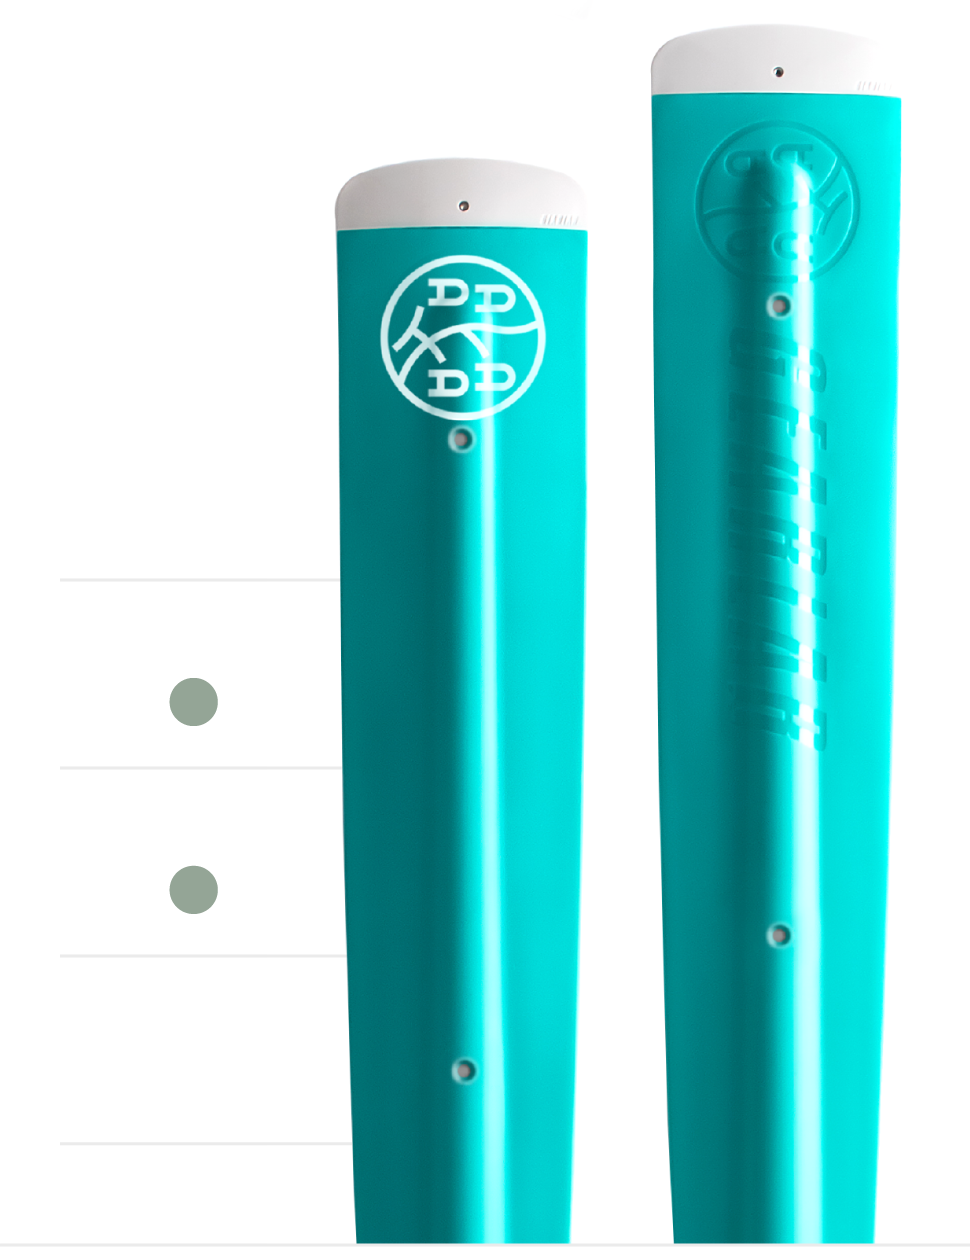 paddle-comparison